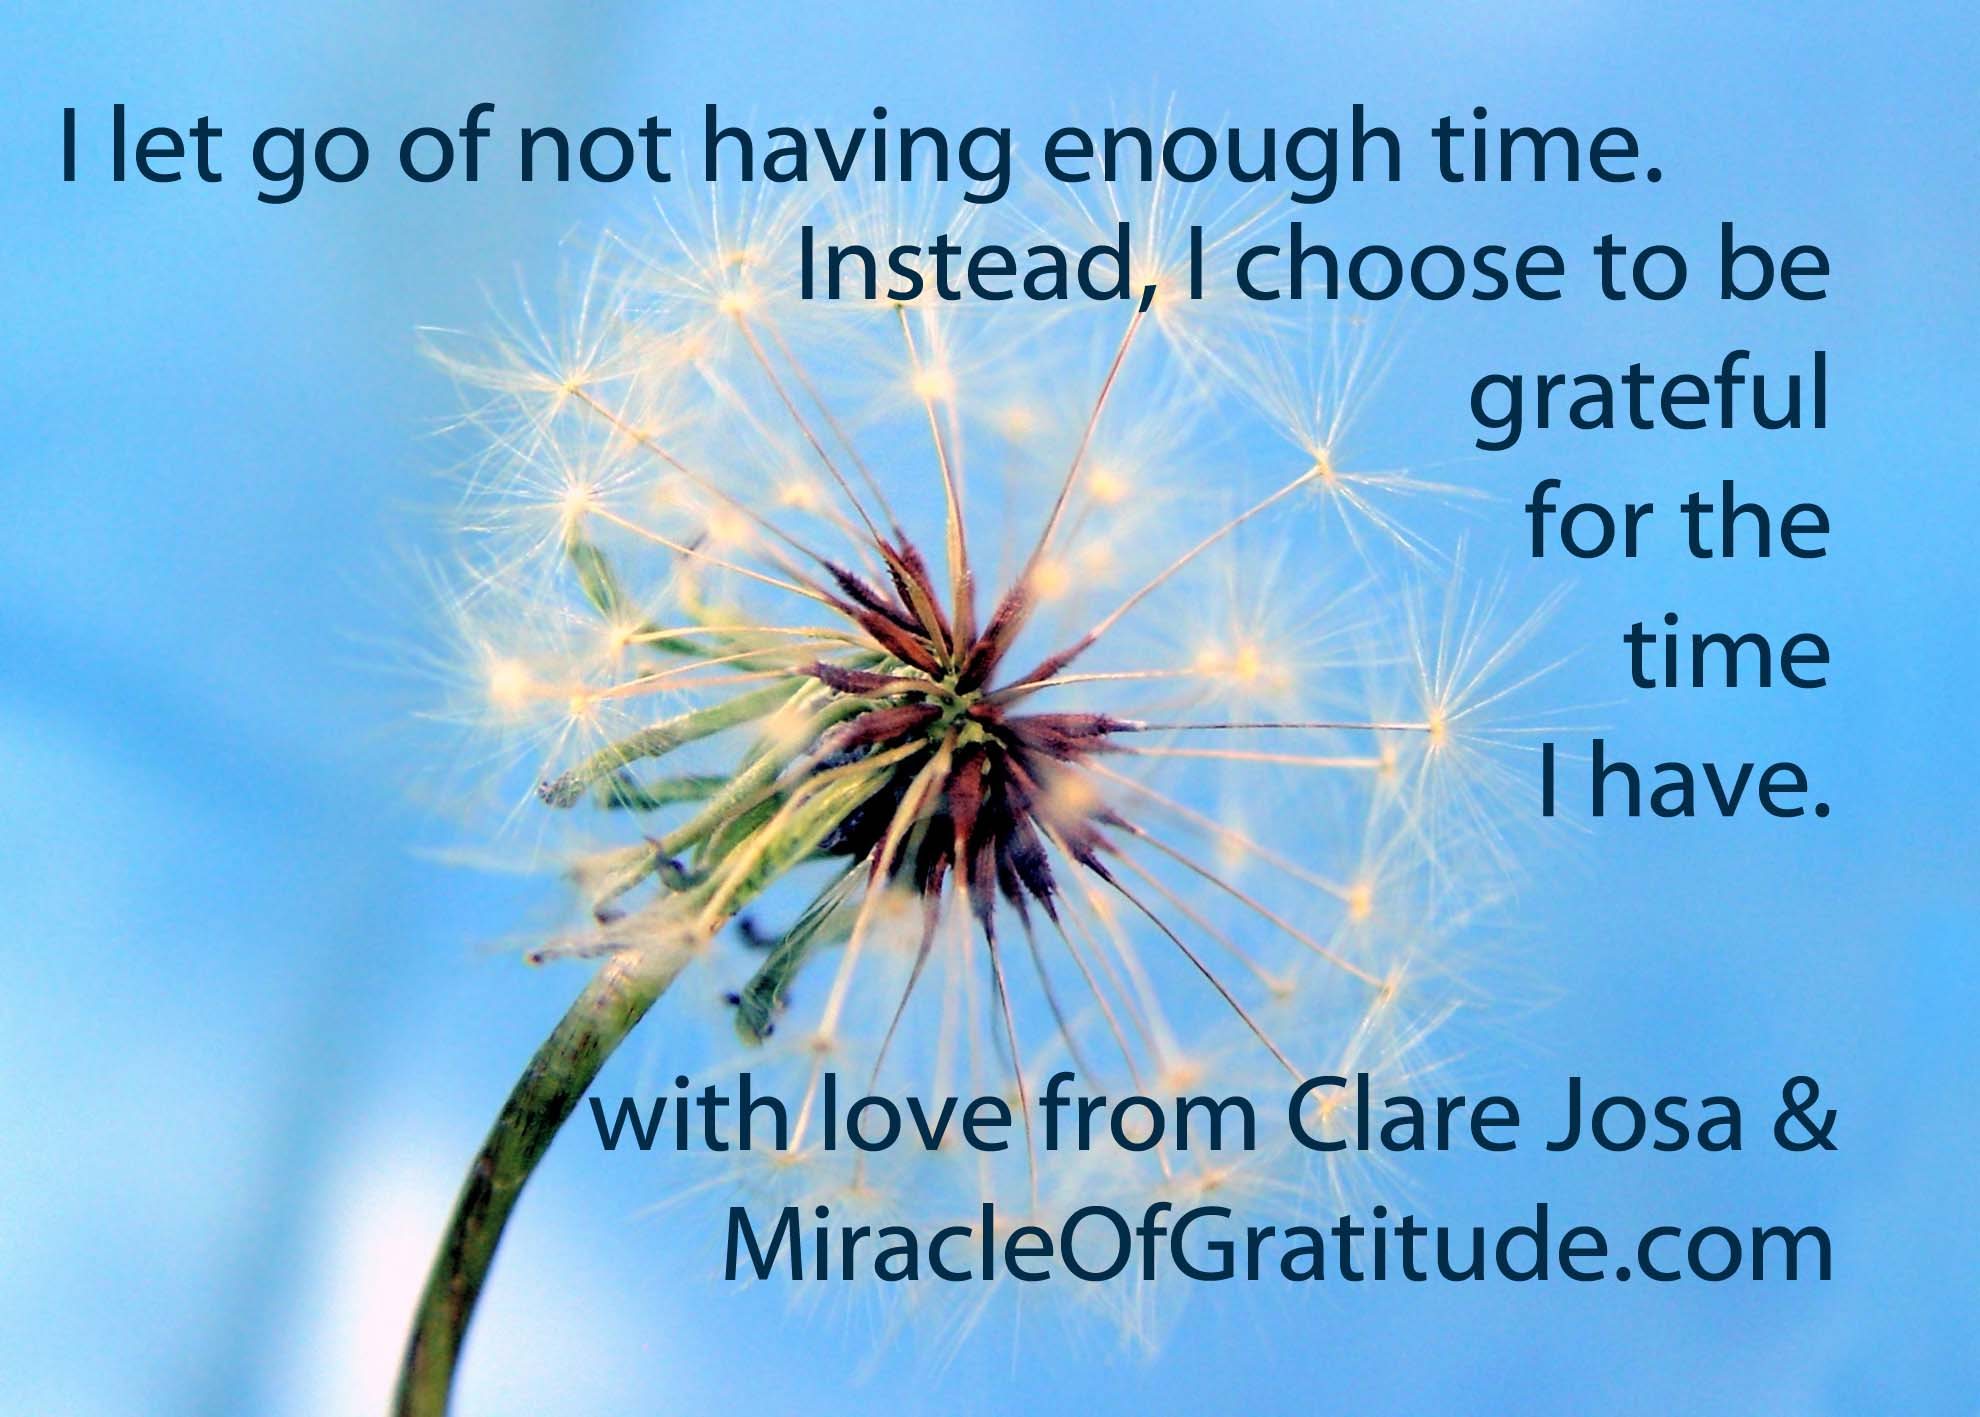 2013-10-28-clare-josa-gratitude-screen-saver